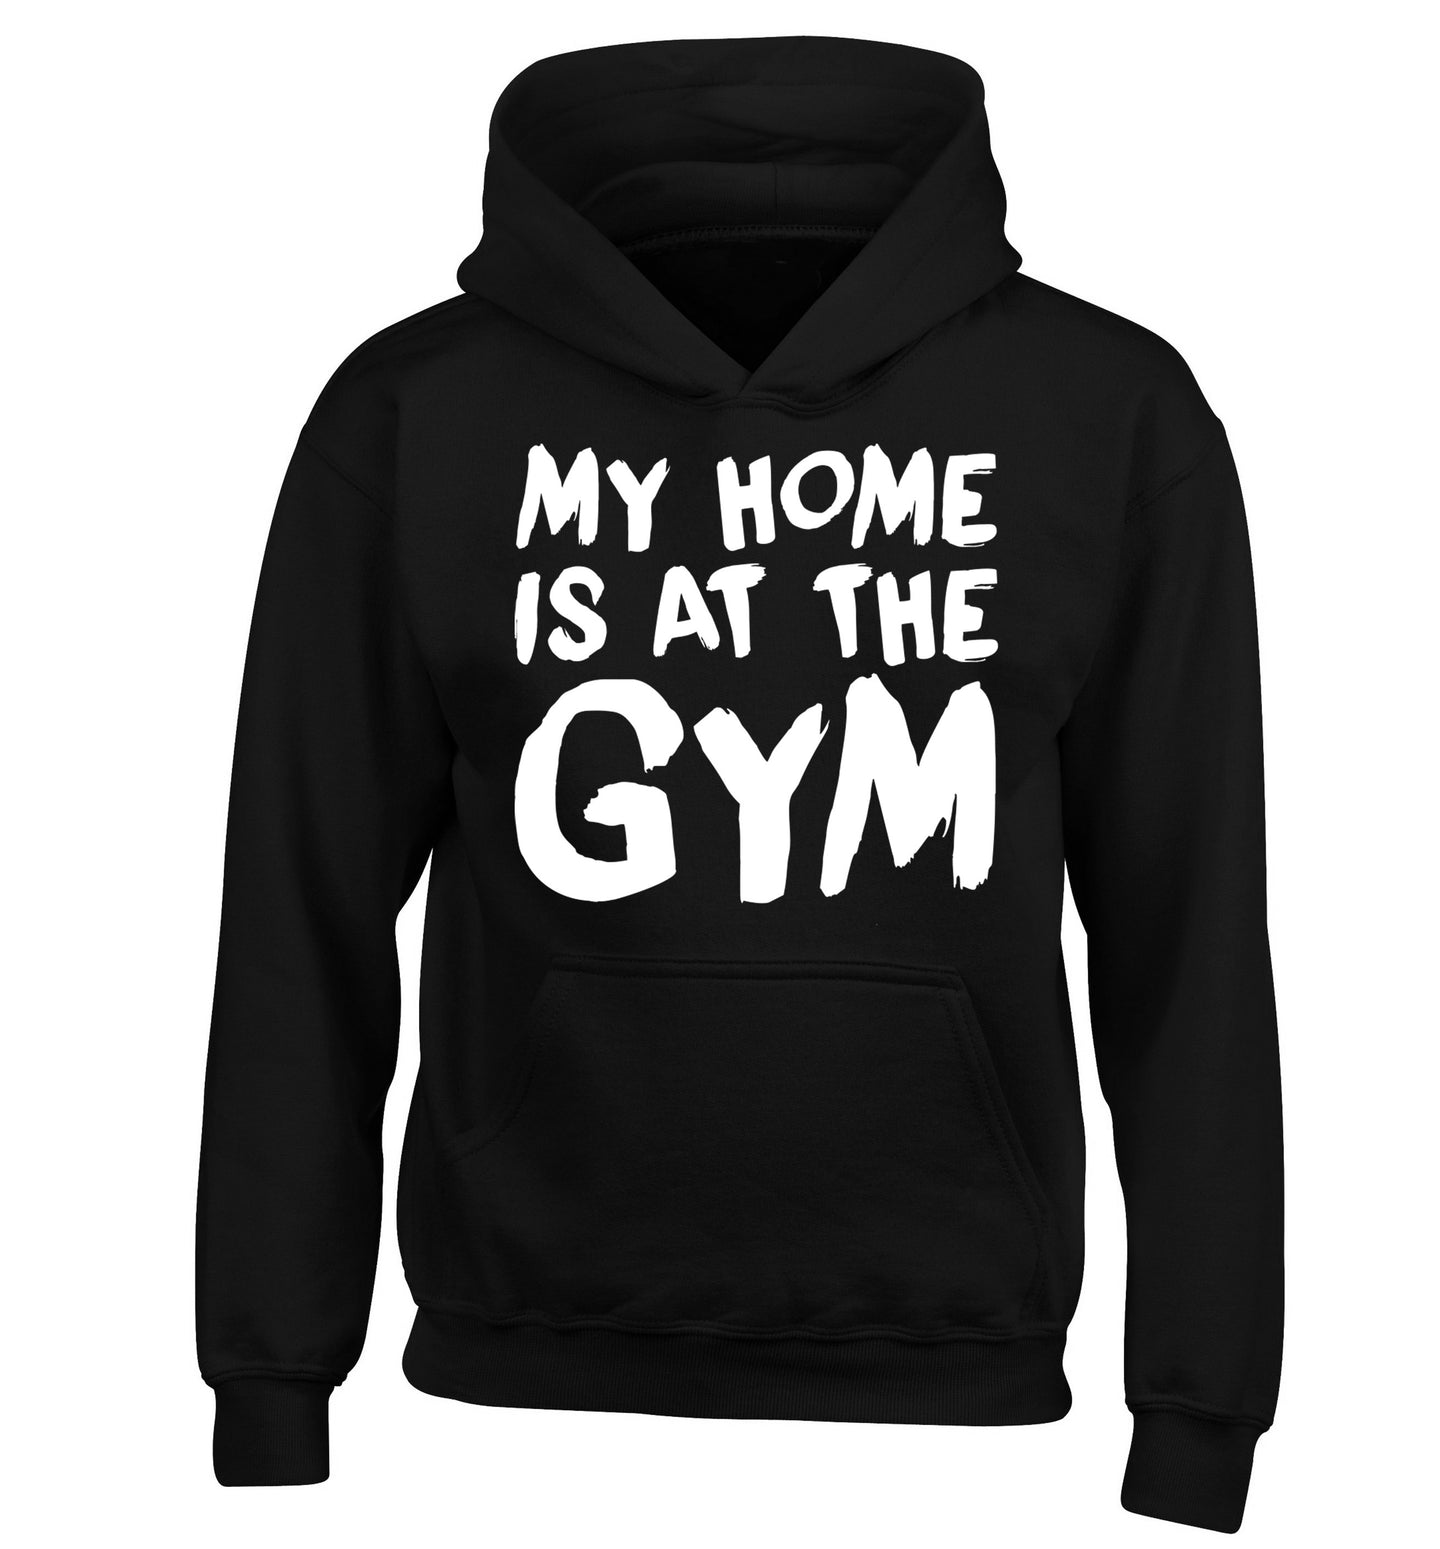 My home is at the gym children's black hoodie 12-14 Years